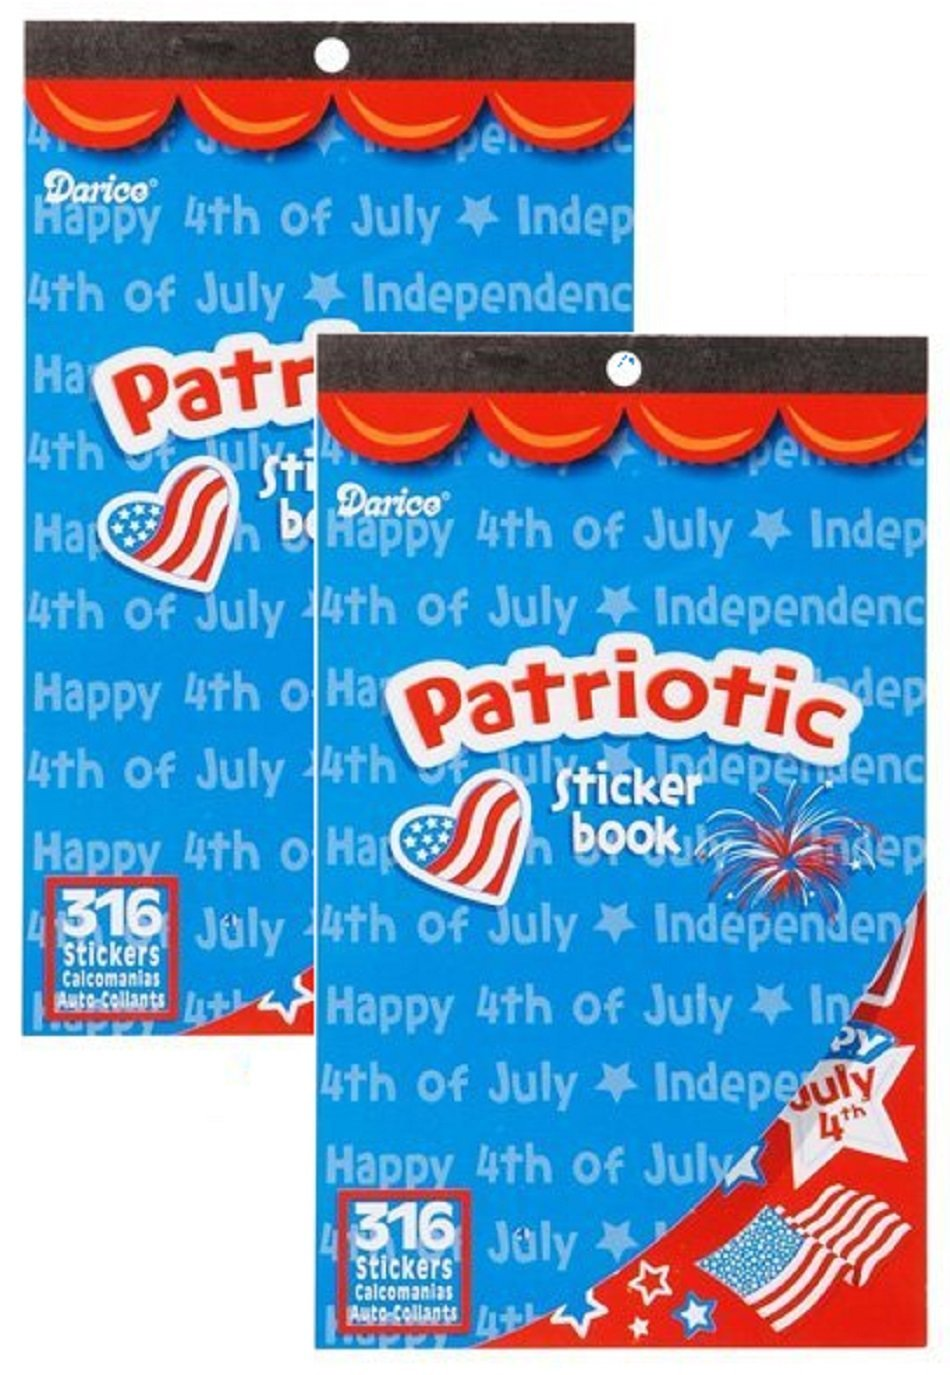 Memorial Day ARTS /& Crafts 2 Books of PATRIOTIC USA Mini Stickers 632 total 4th of JULY